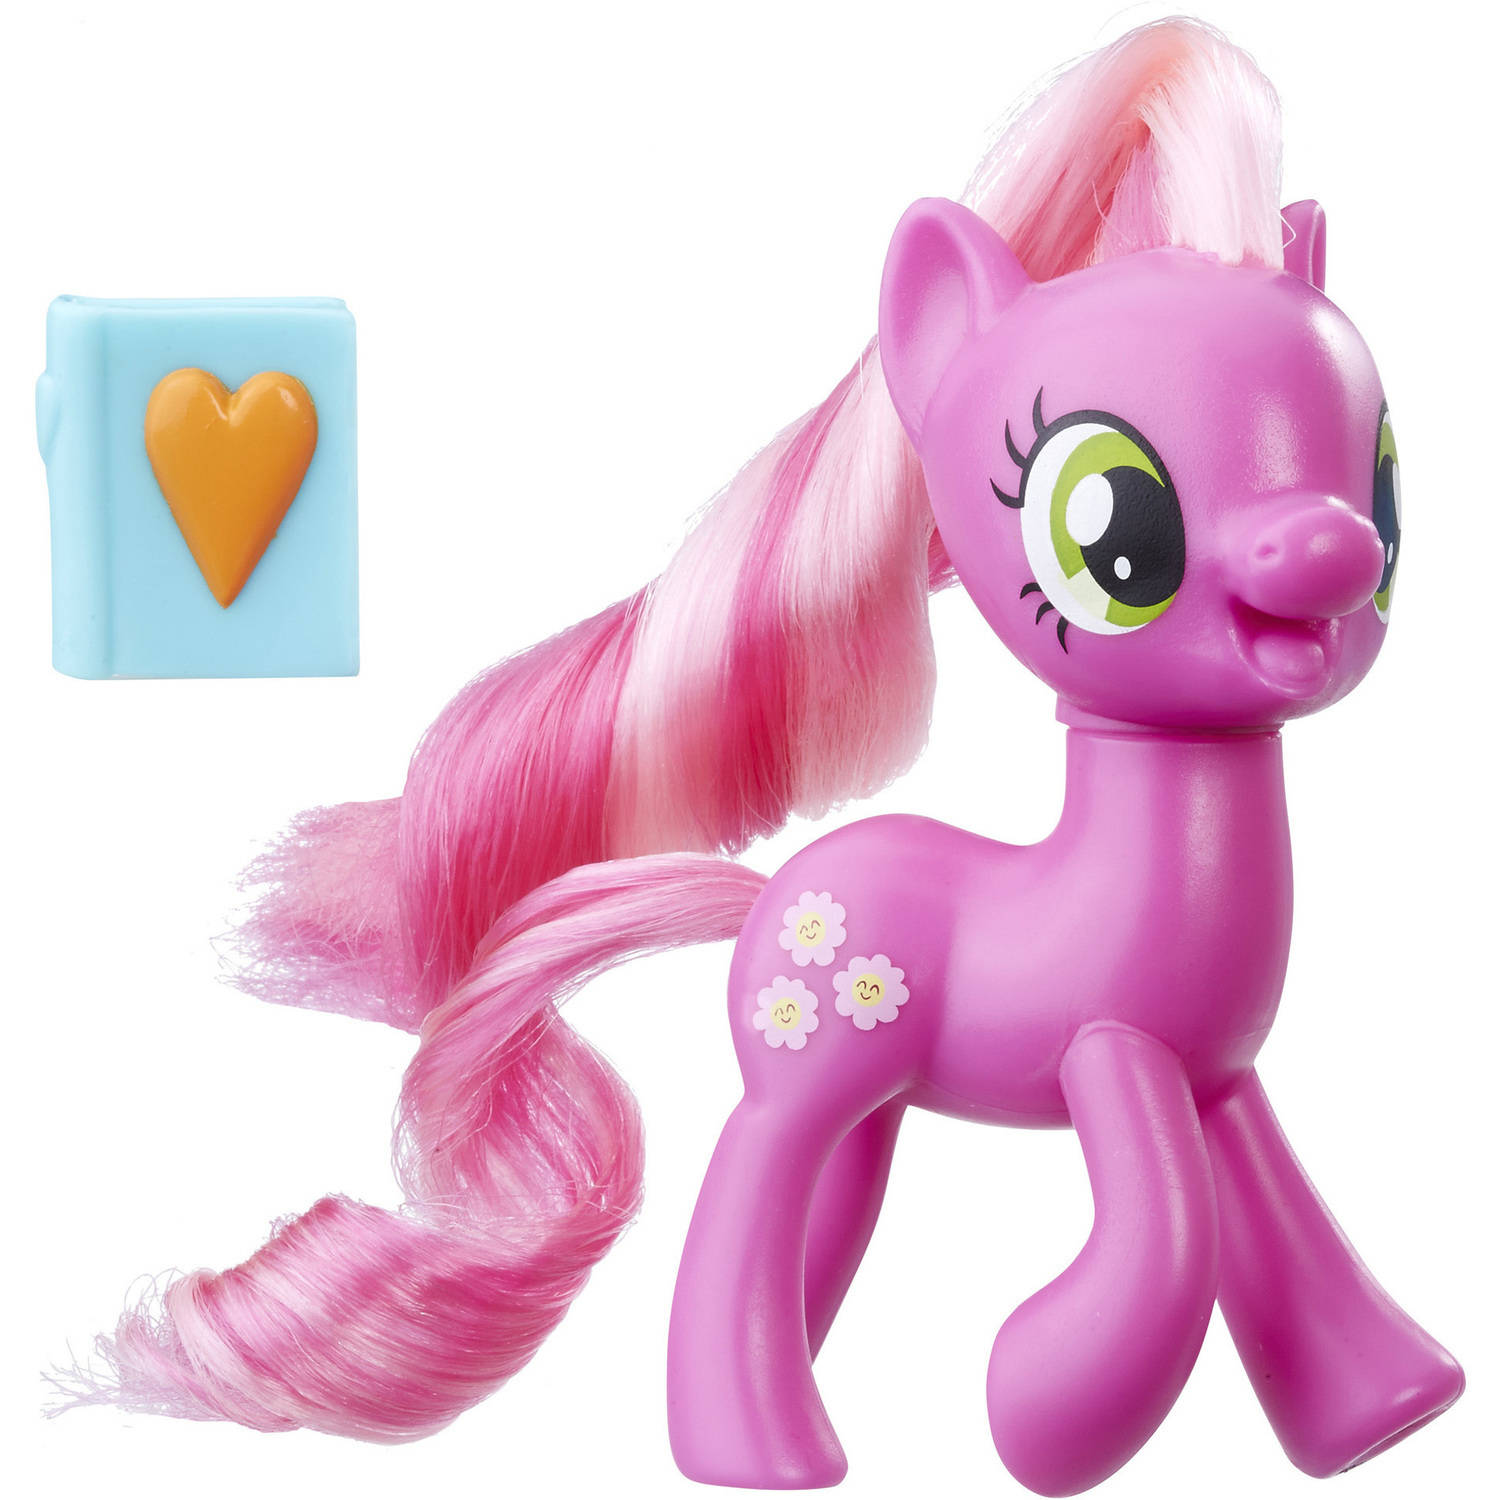 My Little Pony Friends Cheerilee by Hasbro